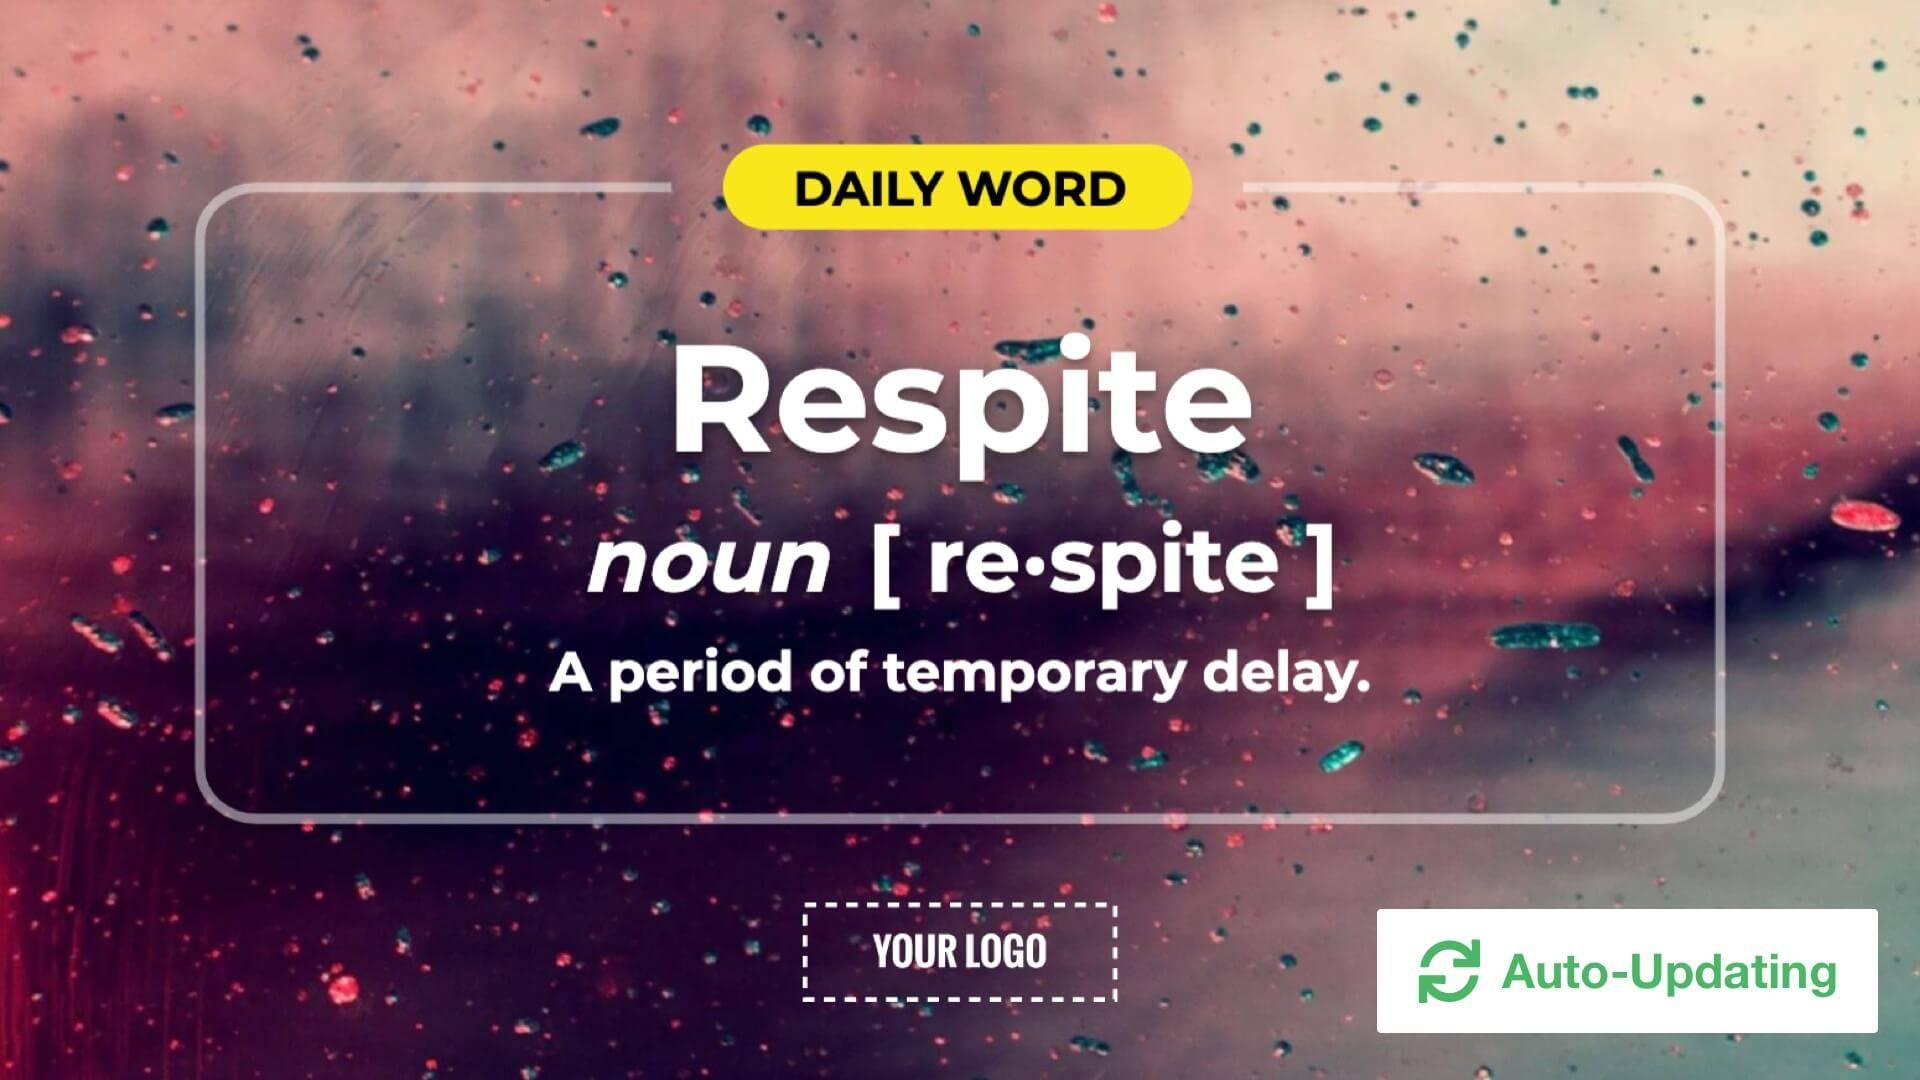 Daily Word Digital Signage Template